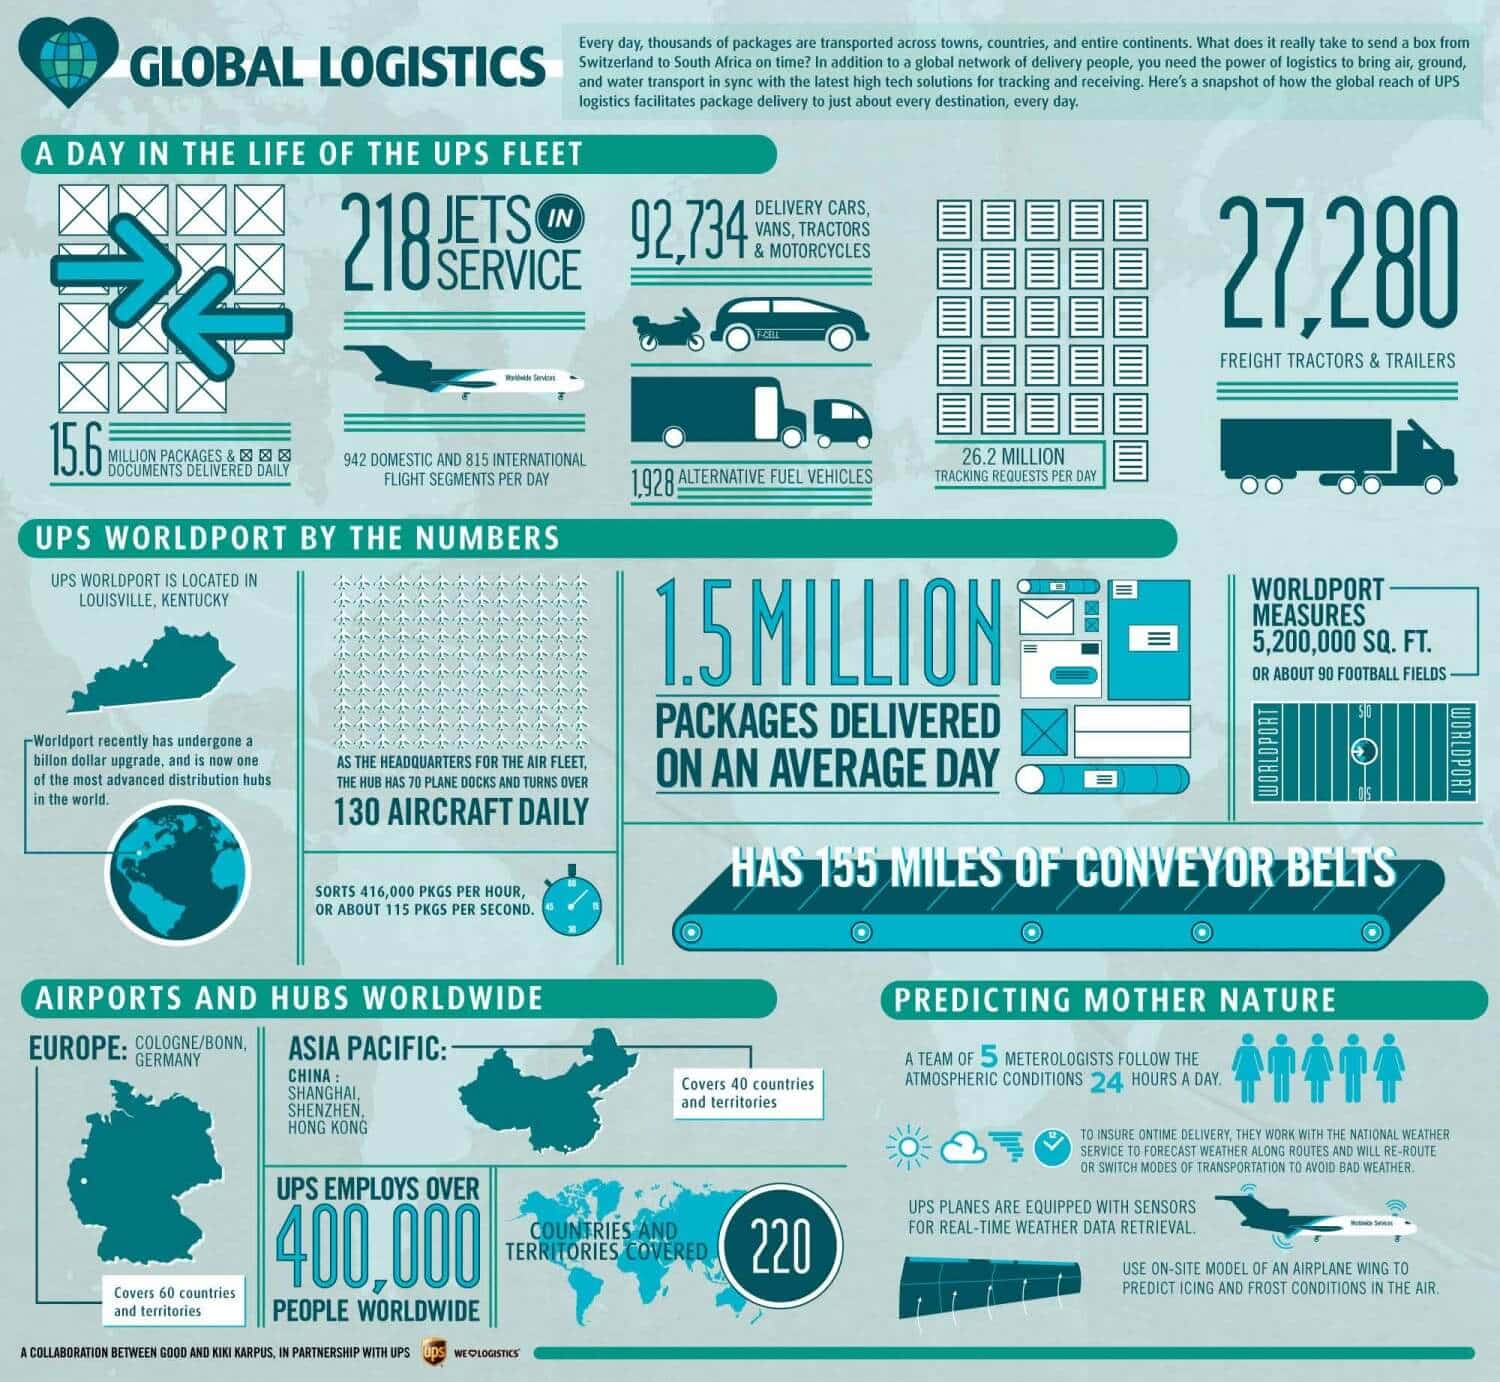 global-logistics-a-day-in-the-life-of-the-ups-fleet_50290cf79fb12_w1500